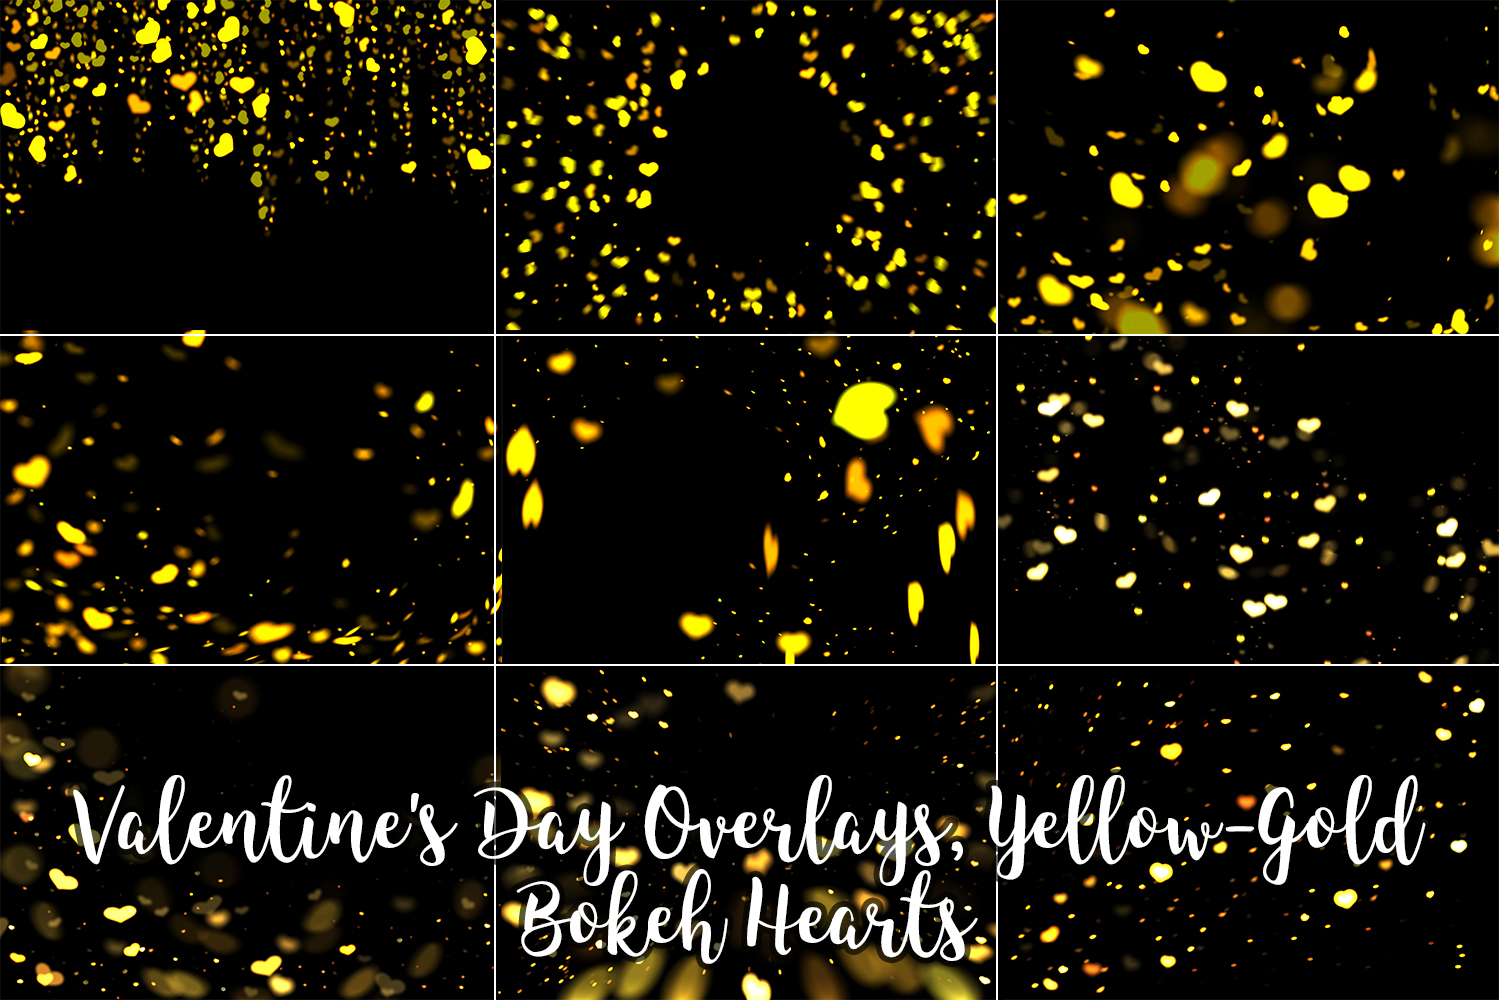 Valentine's Day Overlays, Yellow Gold Hearts Bokeh Overlays example image 11